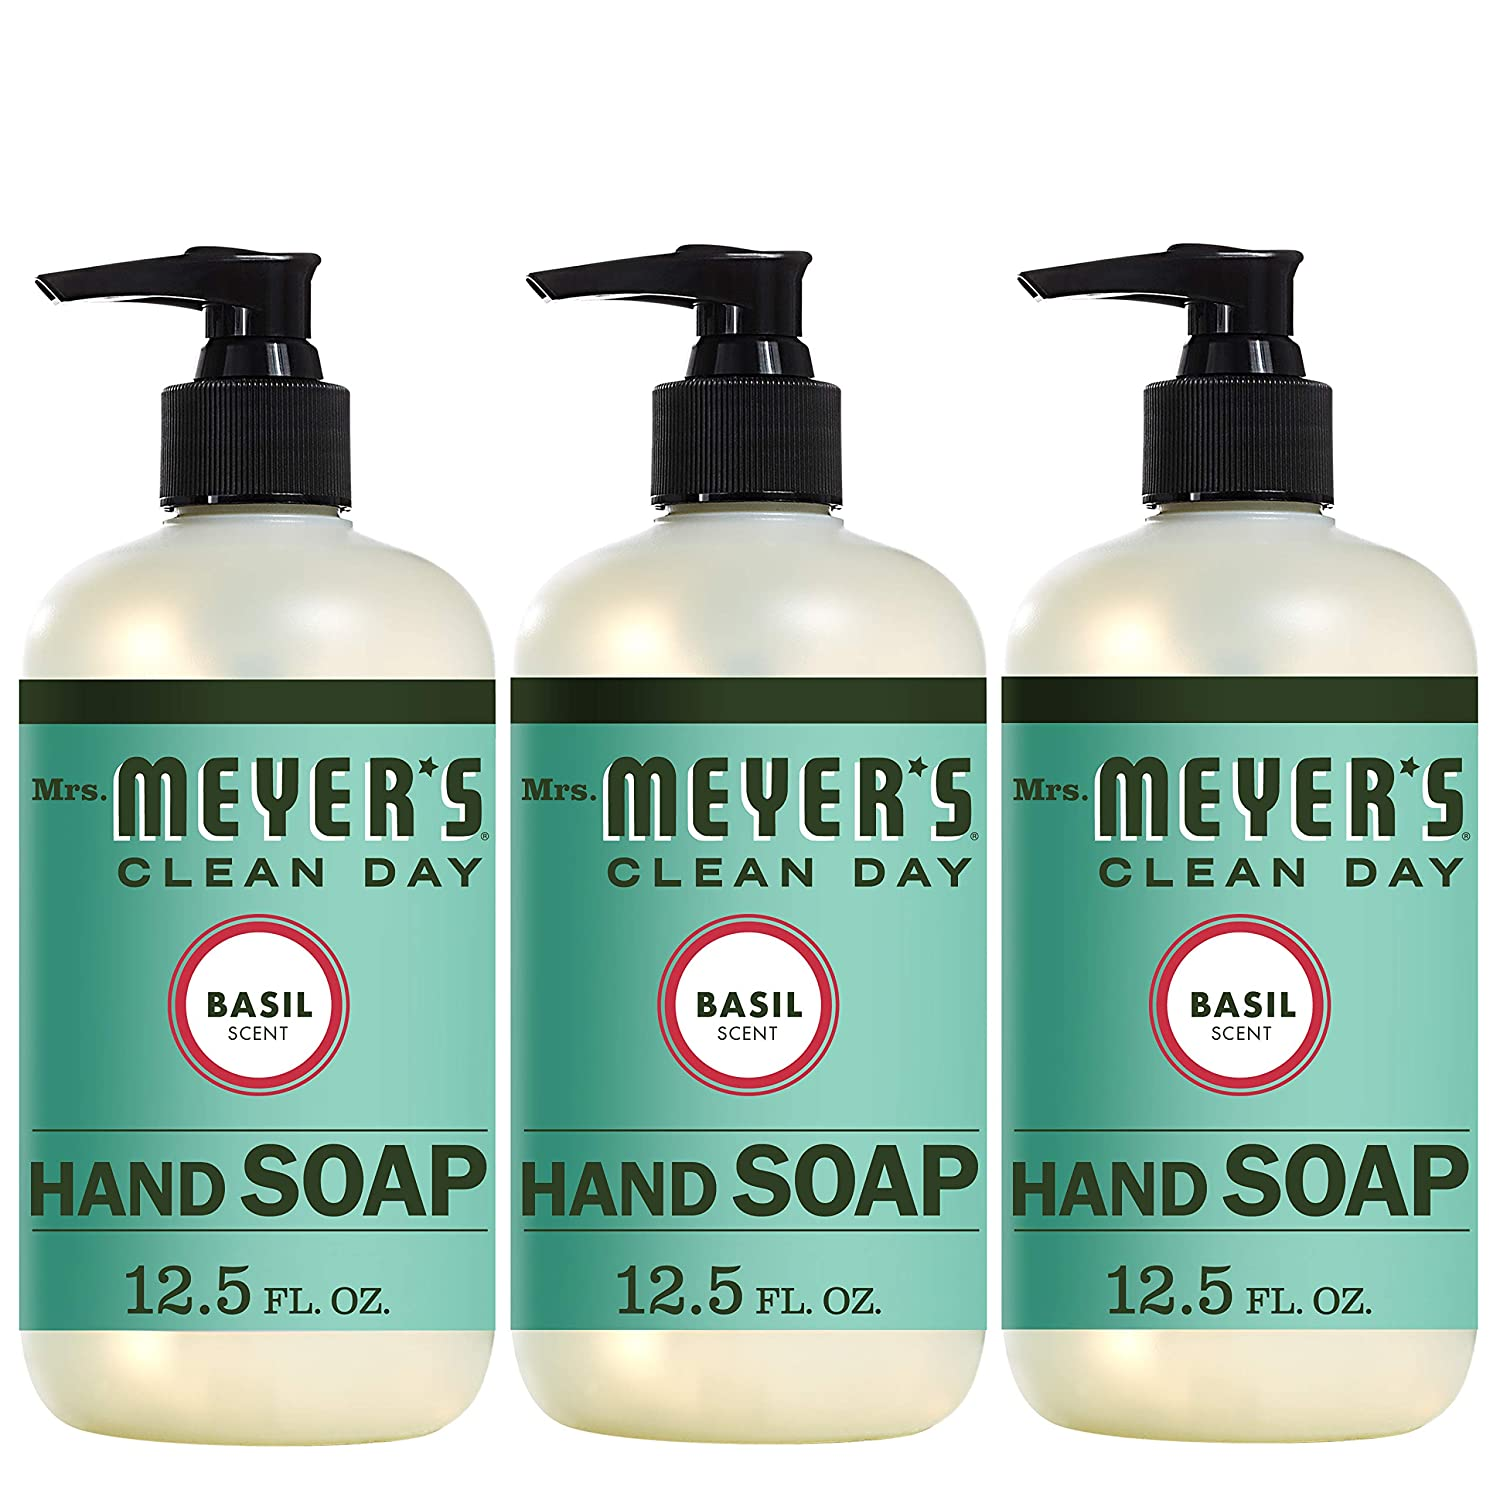 Mrs. Meyer´s Clean Day Hand Soap, Basil